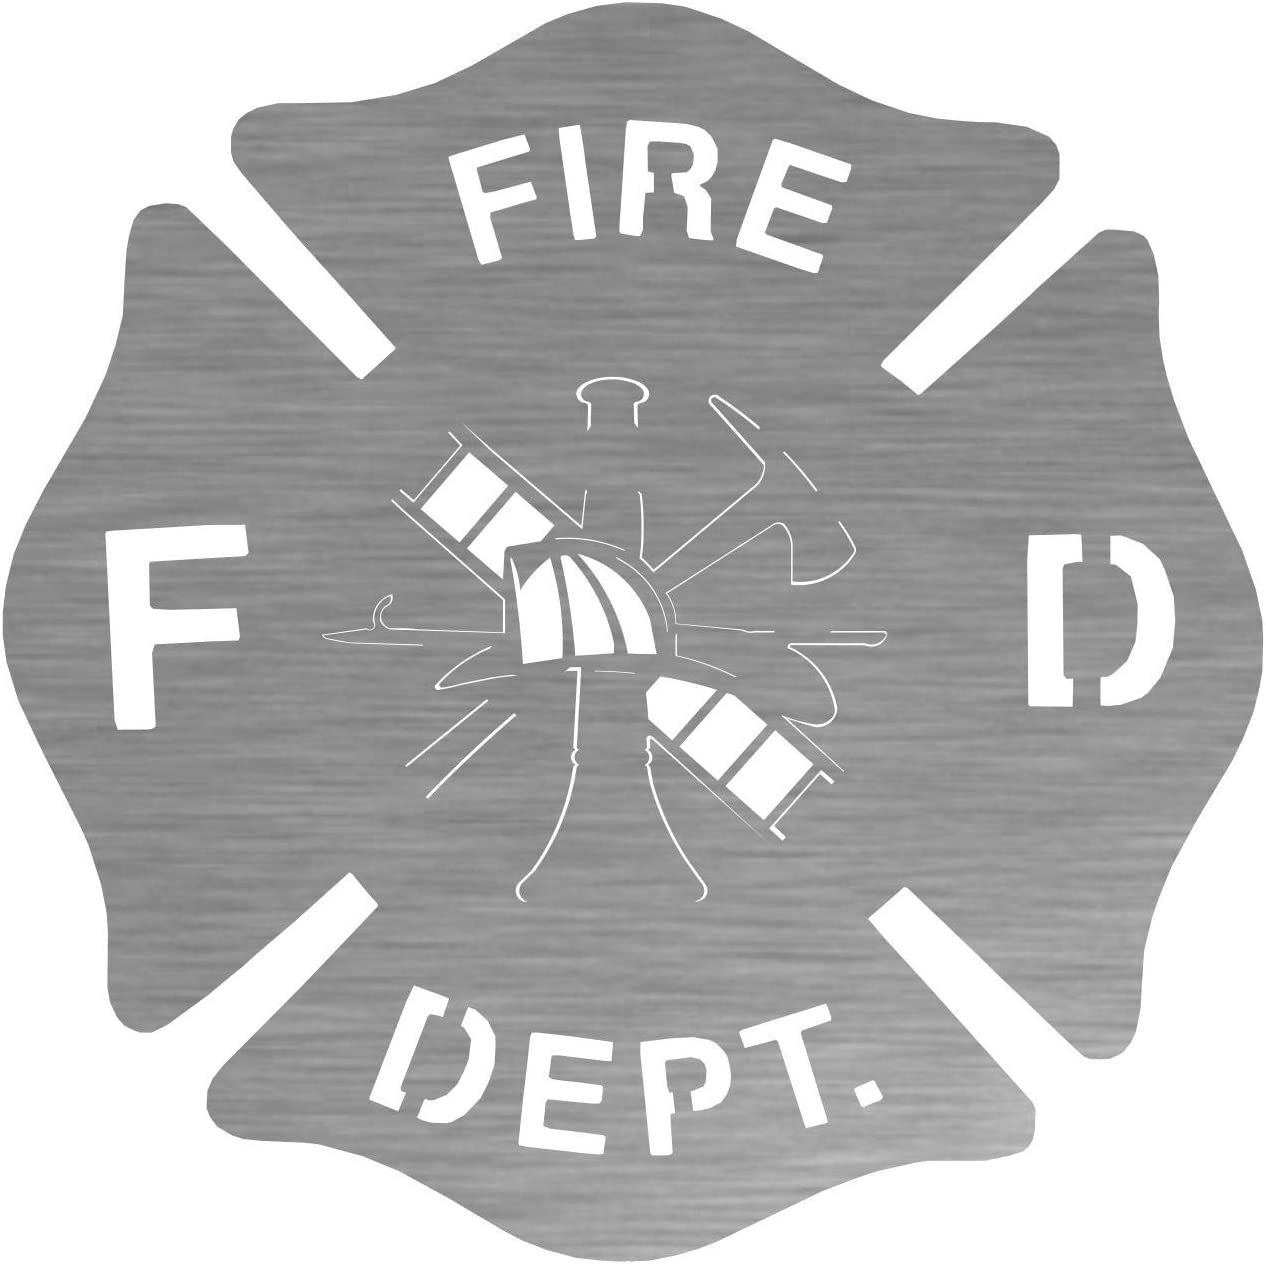 Firefighter Badge Steel shipfree Laser San Francisco Mall Cut Wall Art Natural Shiny with a